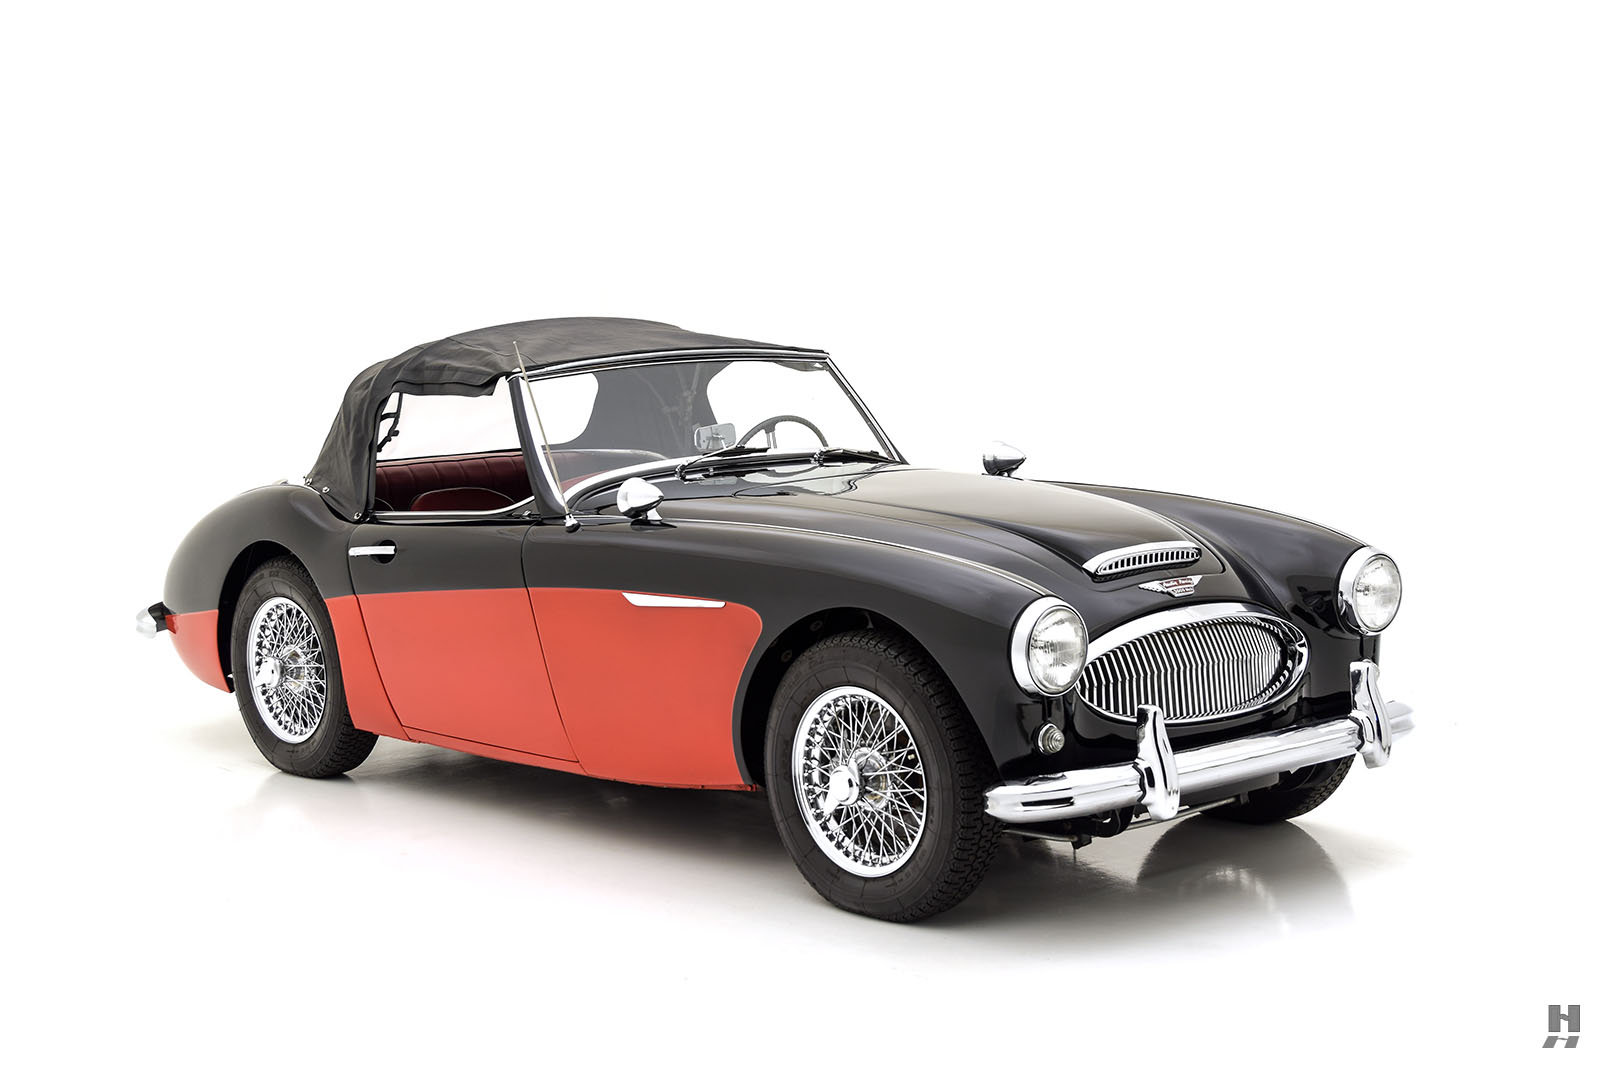 1962 AUSTIN HEALEY 3000 MKII ROADSTER For Sale (picture 2 of 6)